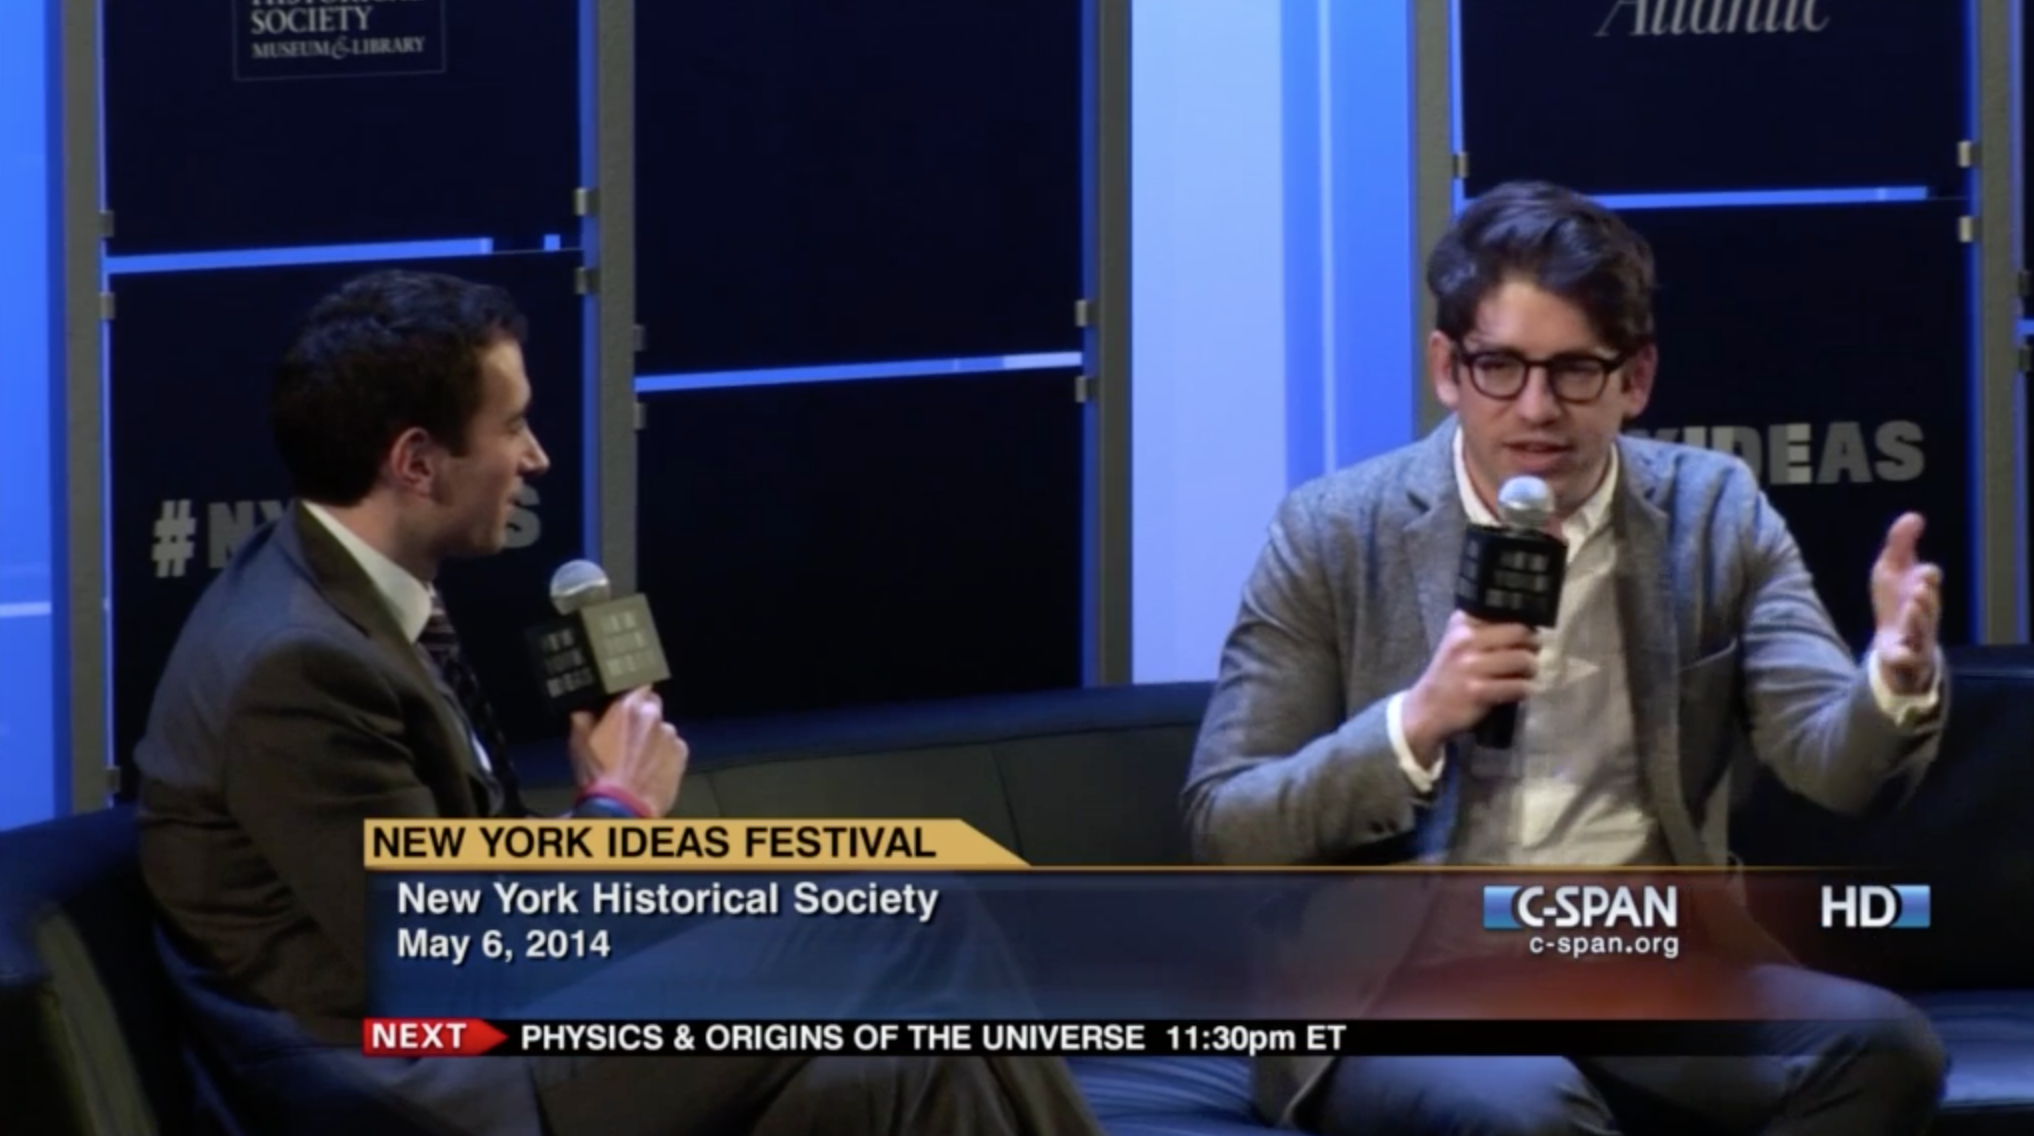 New York Ideas Festival with Andrew Ross Sorkin